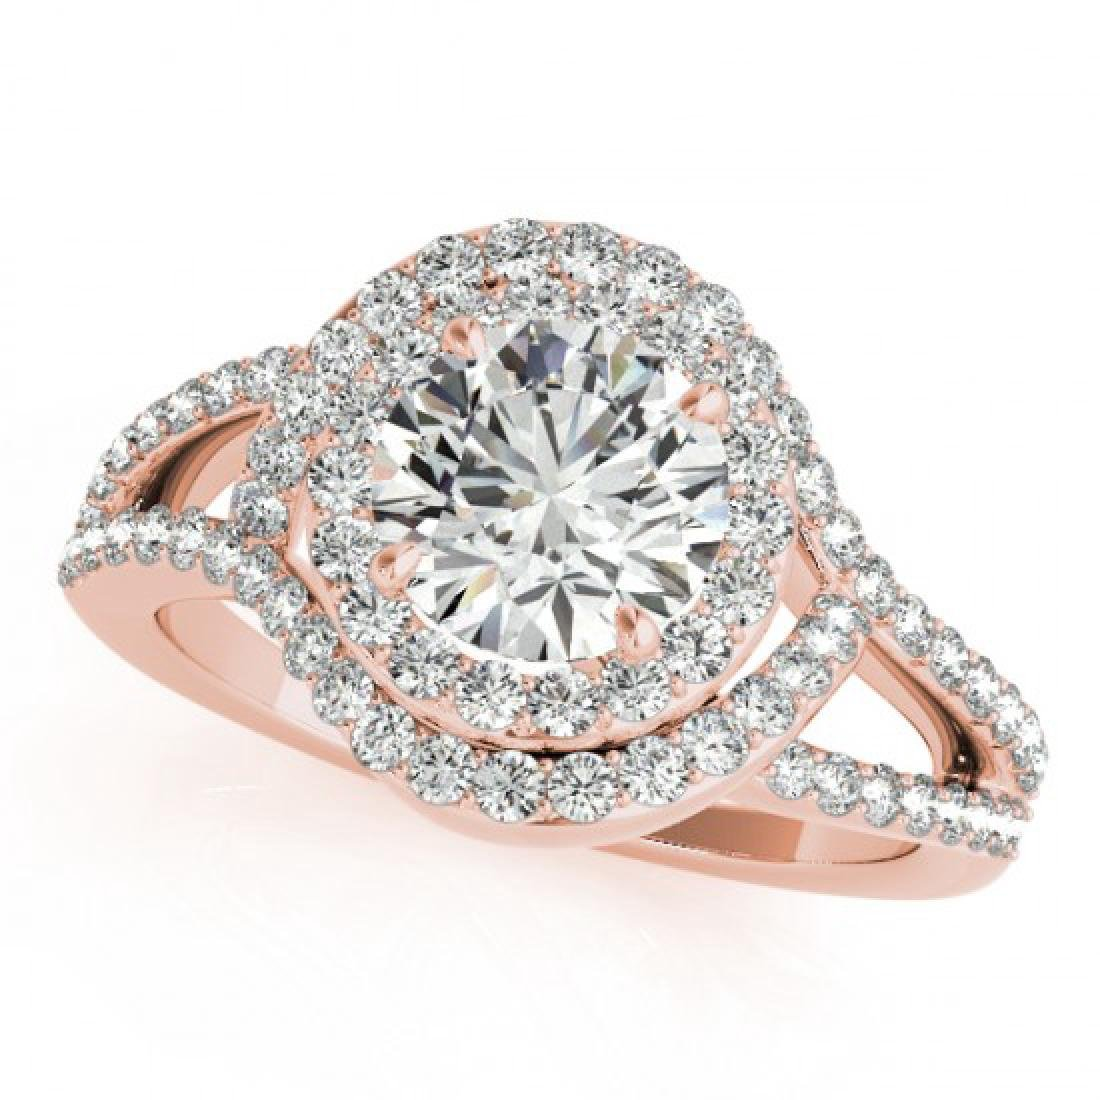 1.9 CTW Certified VS/SI Diamond Solitaire Halo Ring 18K